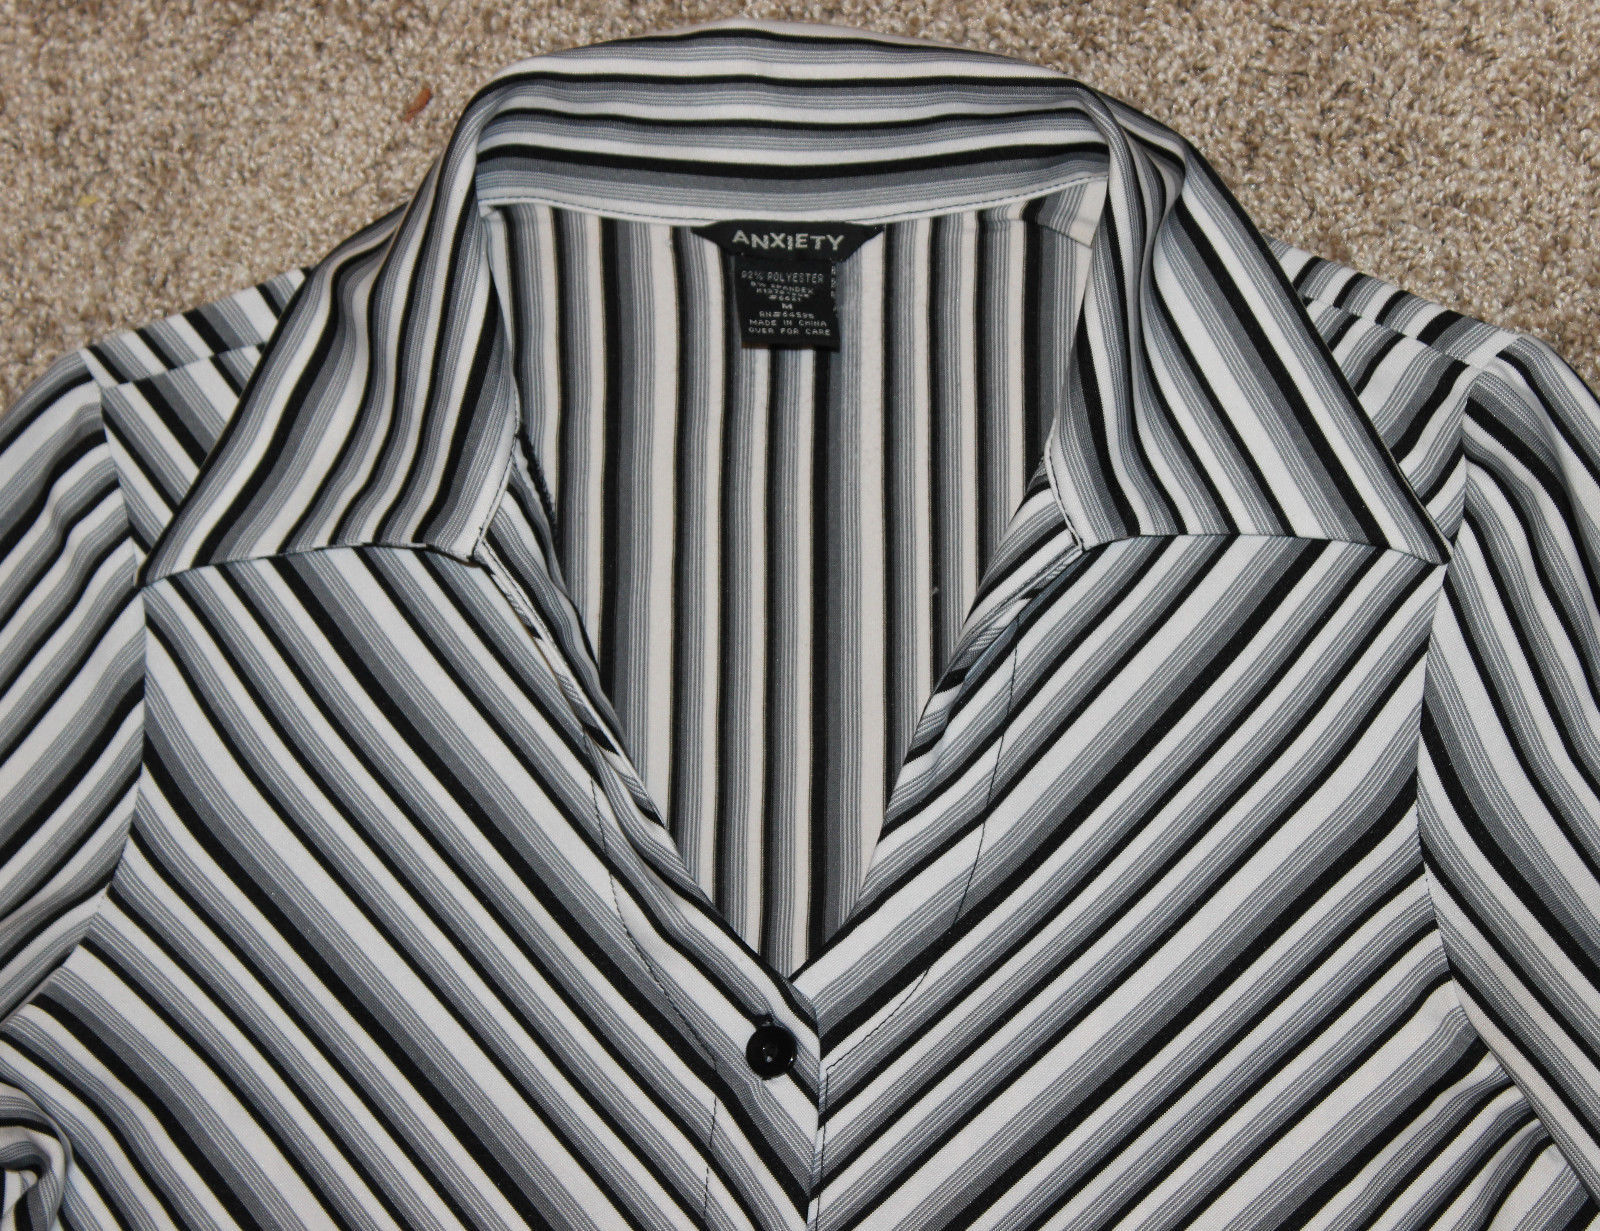 ANXIETY BLACK WHITE GRAY STRIPE FITTED BLOUSE TOP BUTTON SHIRT CAREER  M S 6 image 3